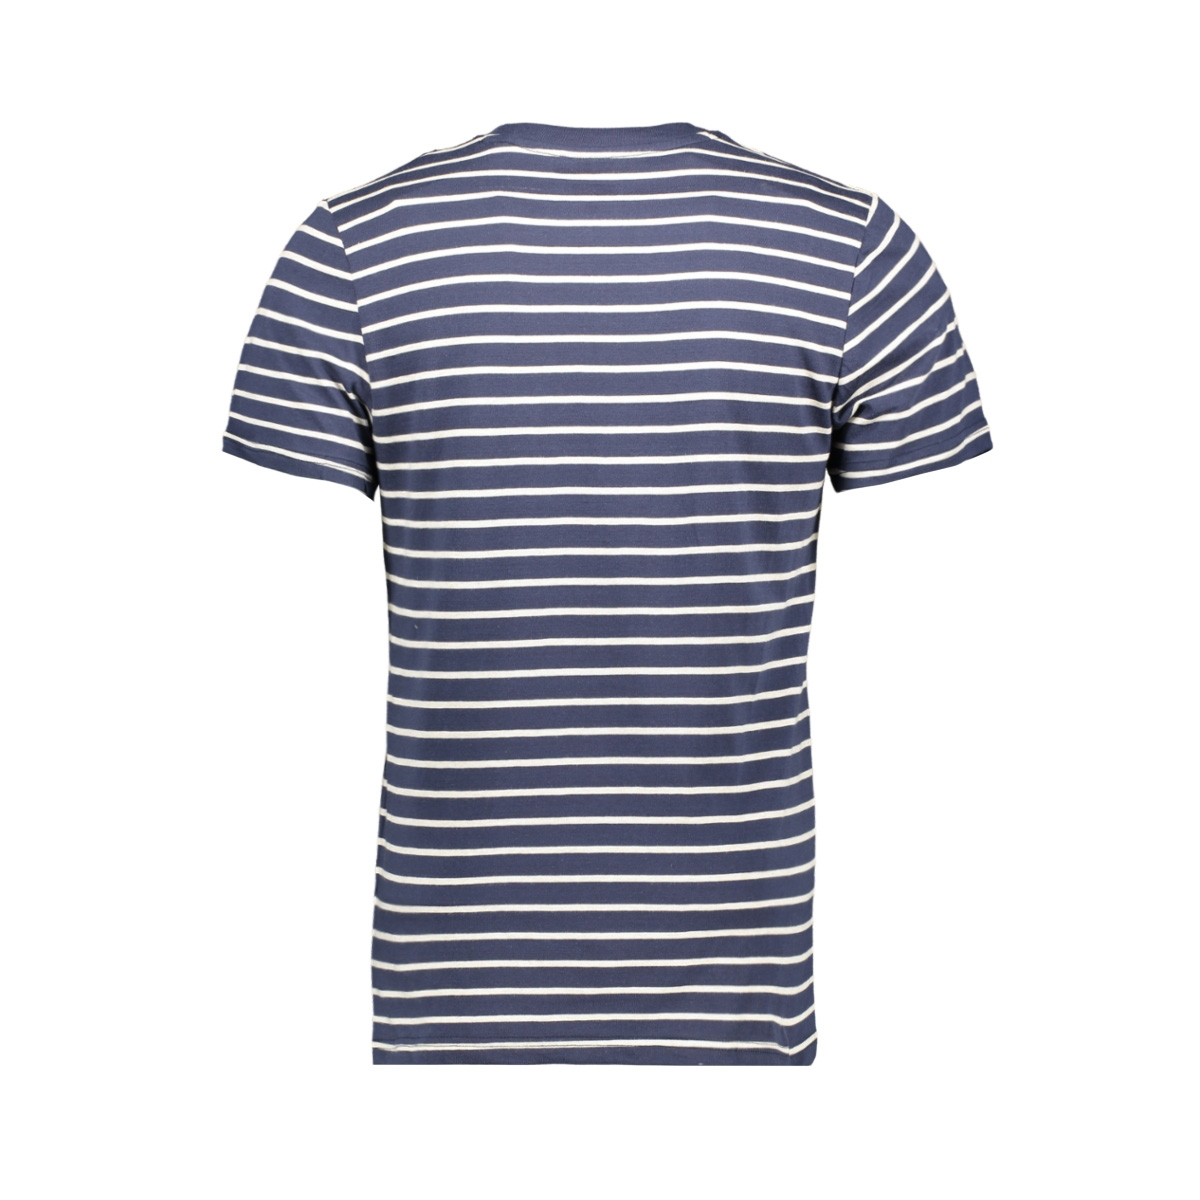 jjestriped tee ss crew neck sts 12164640 jack & jones t-shirt navy blazer/slim